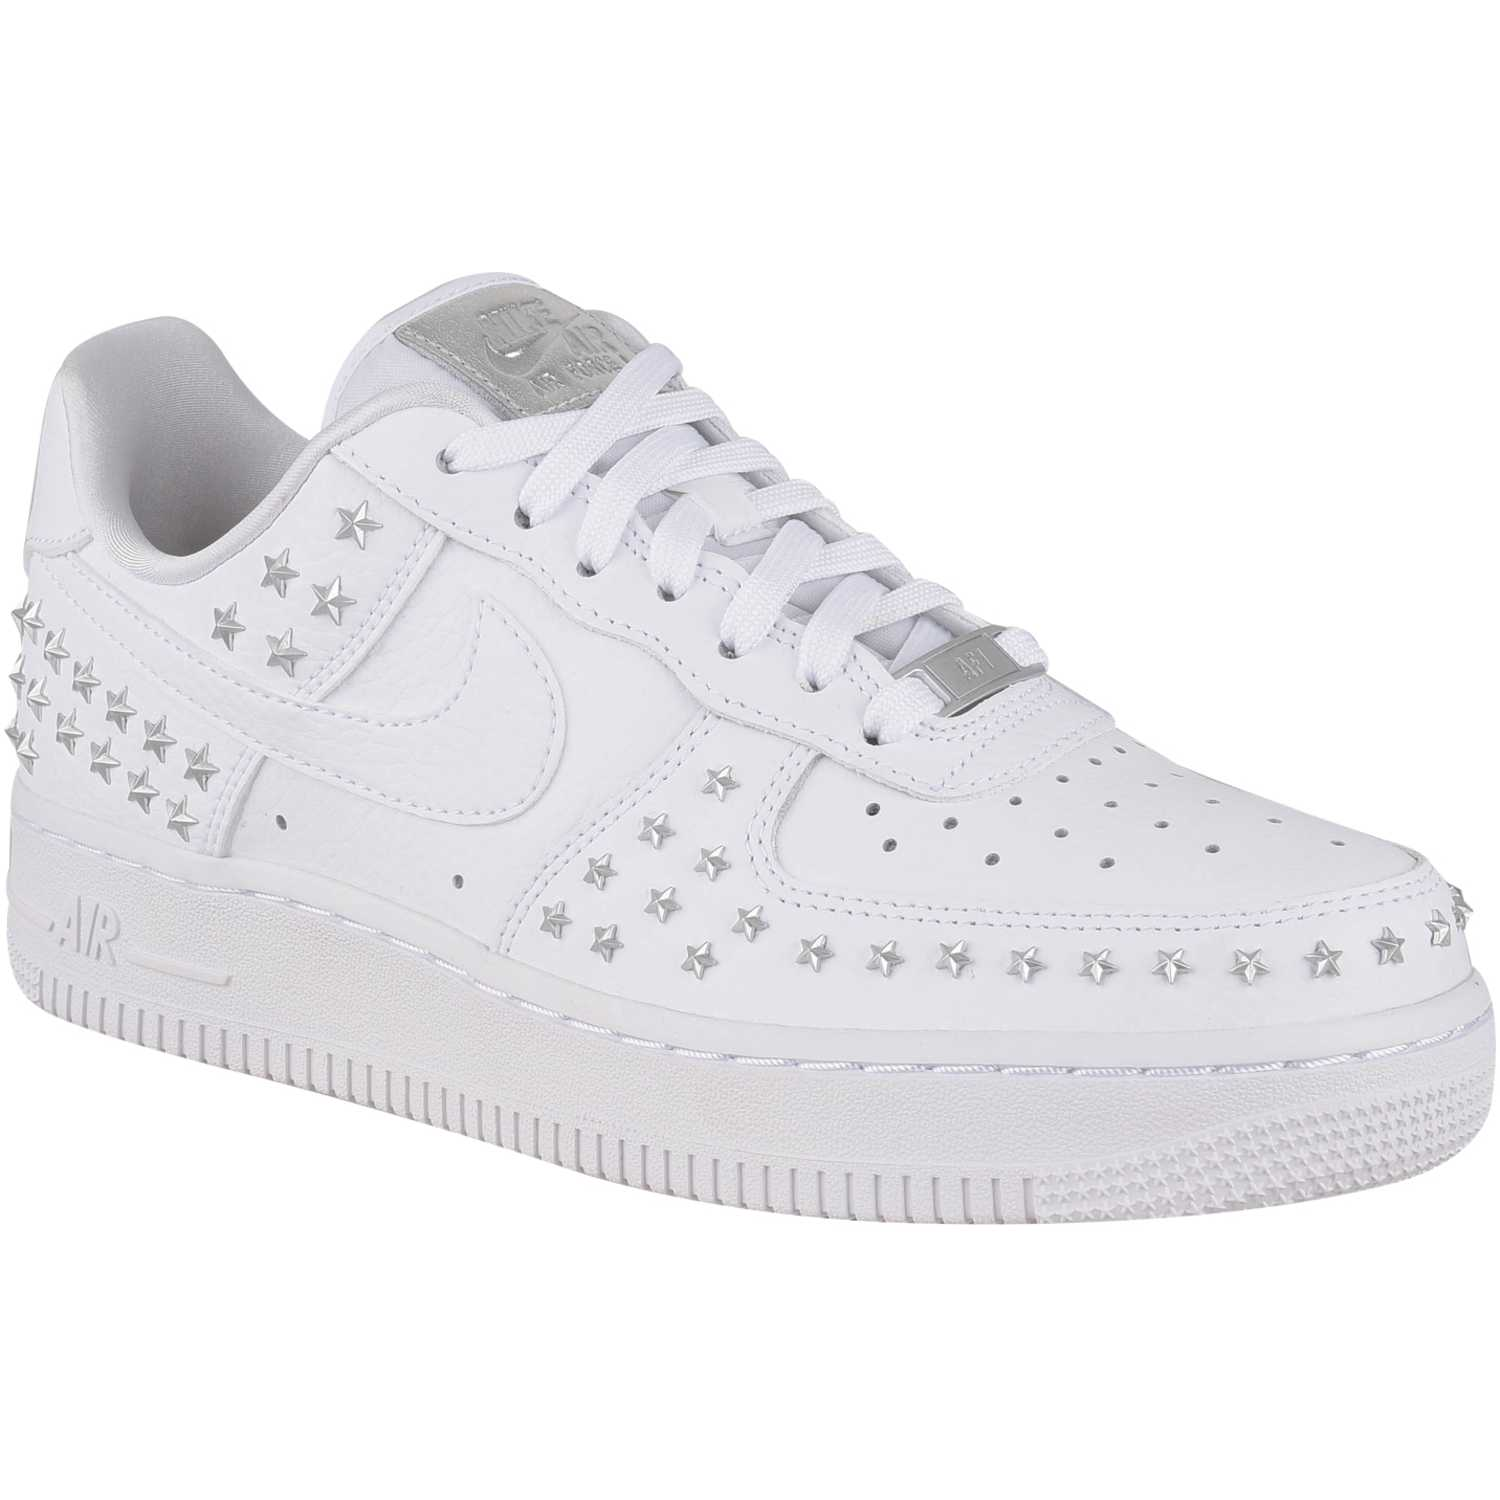 detailed look 96c8f f1faf Zapatilla de Mujer Nike Blanco wmns air force 1 '07 xx | platanitos.com